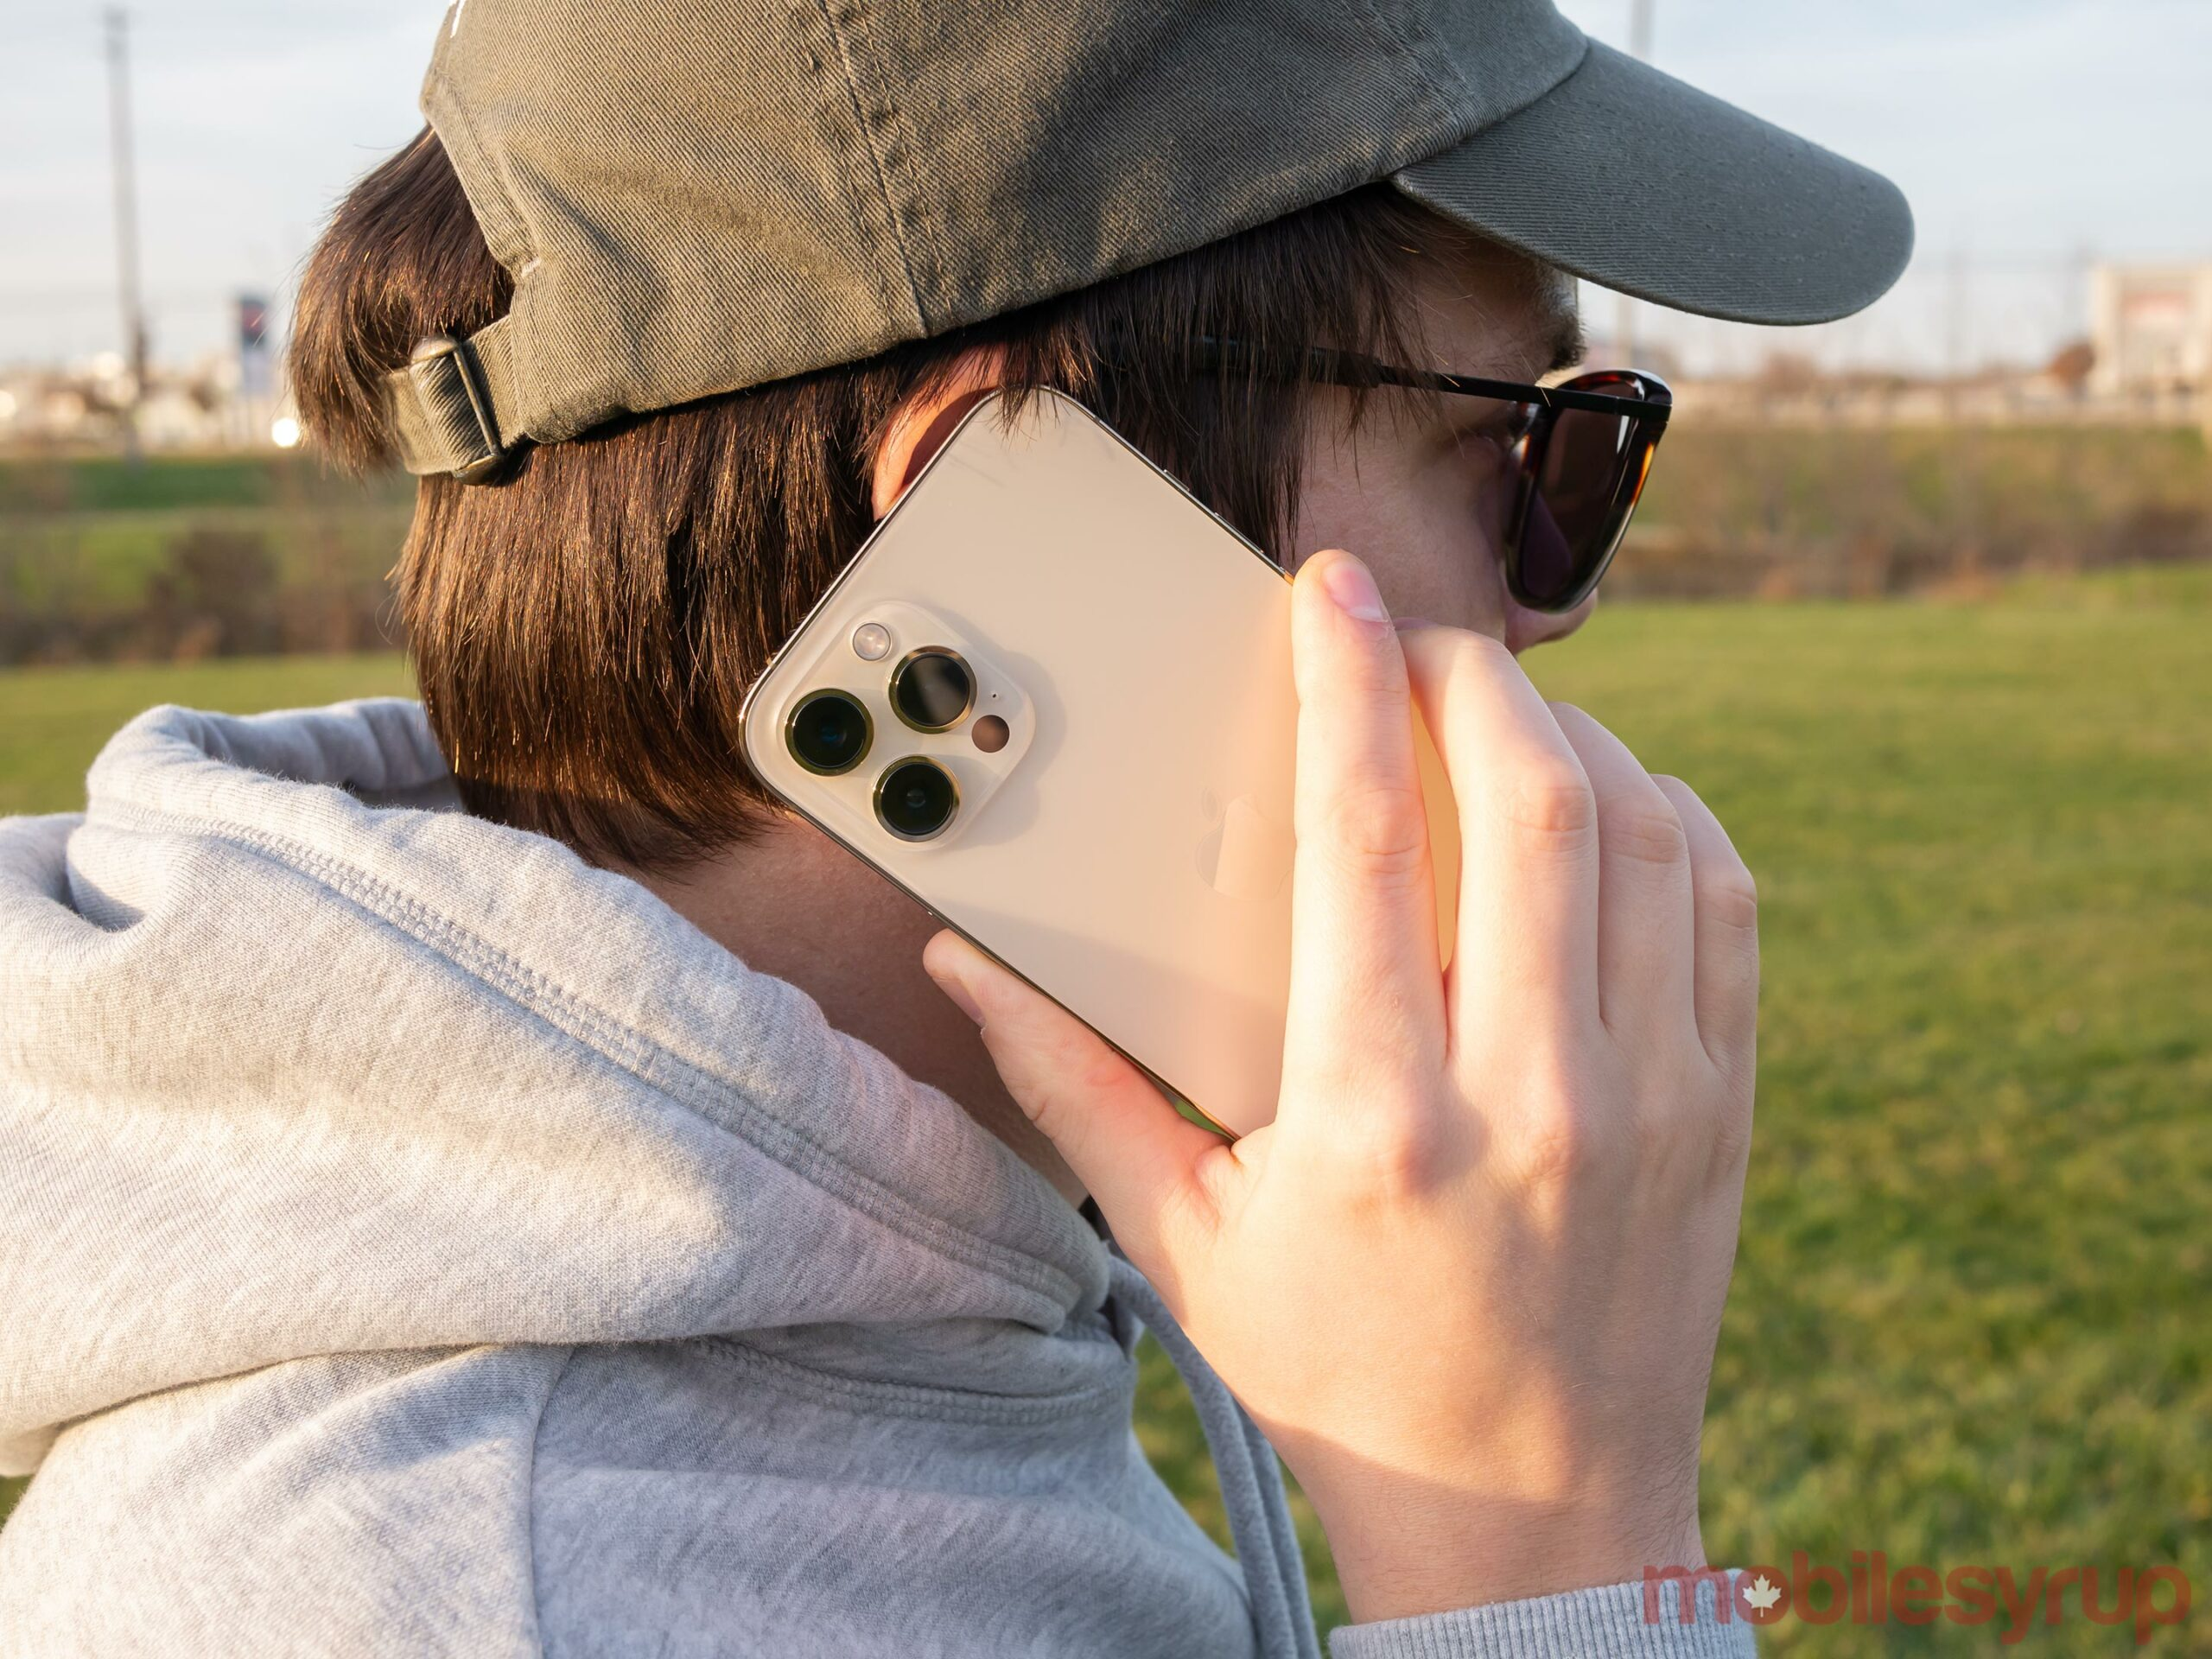 Taking a call on the iPhone 12 Pro Max